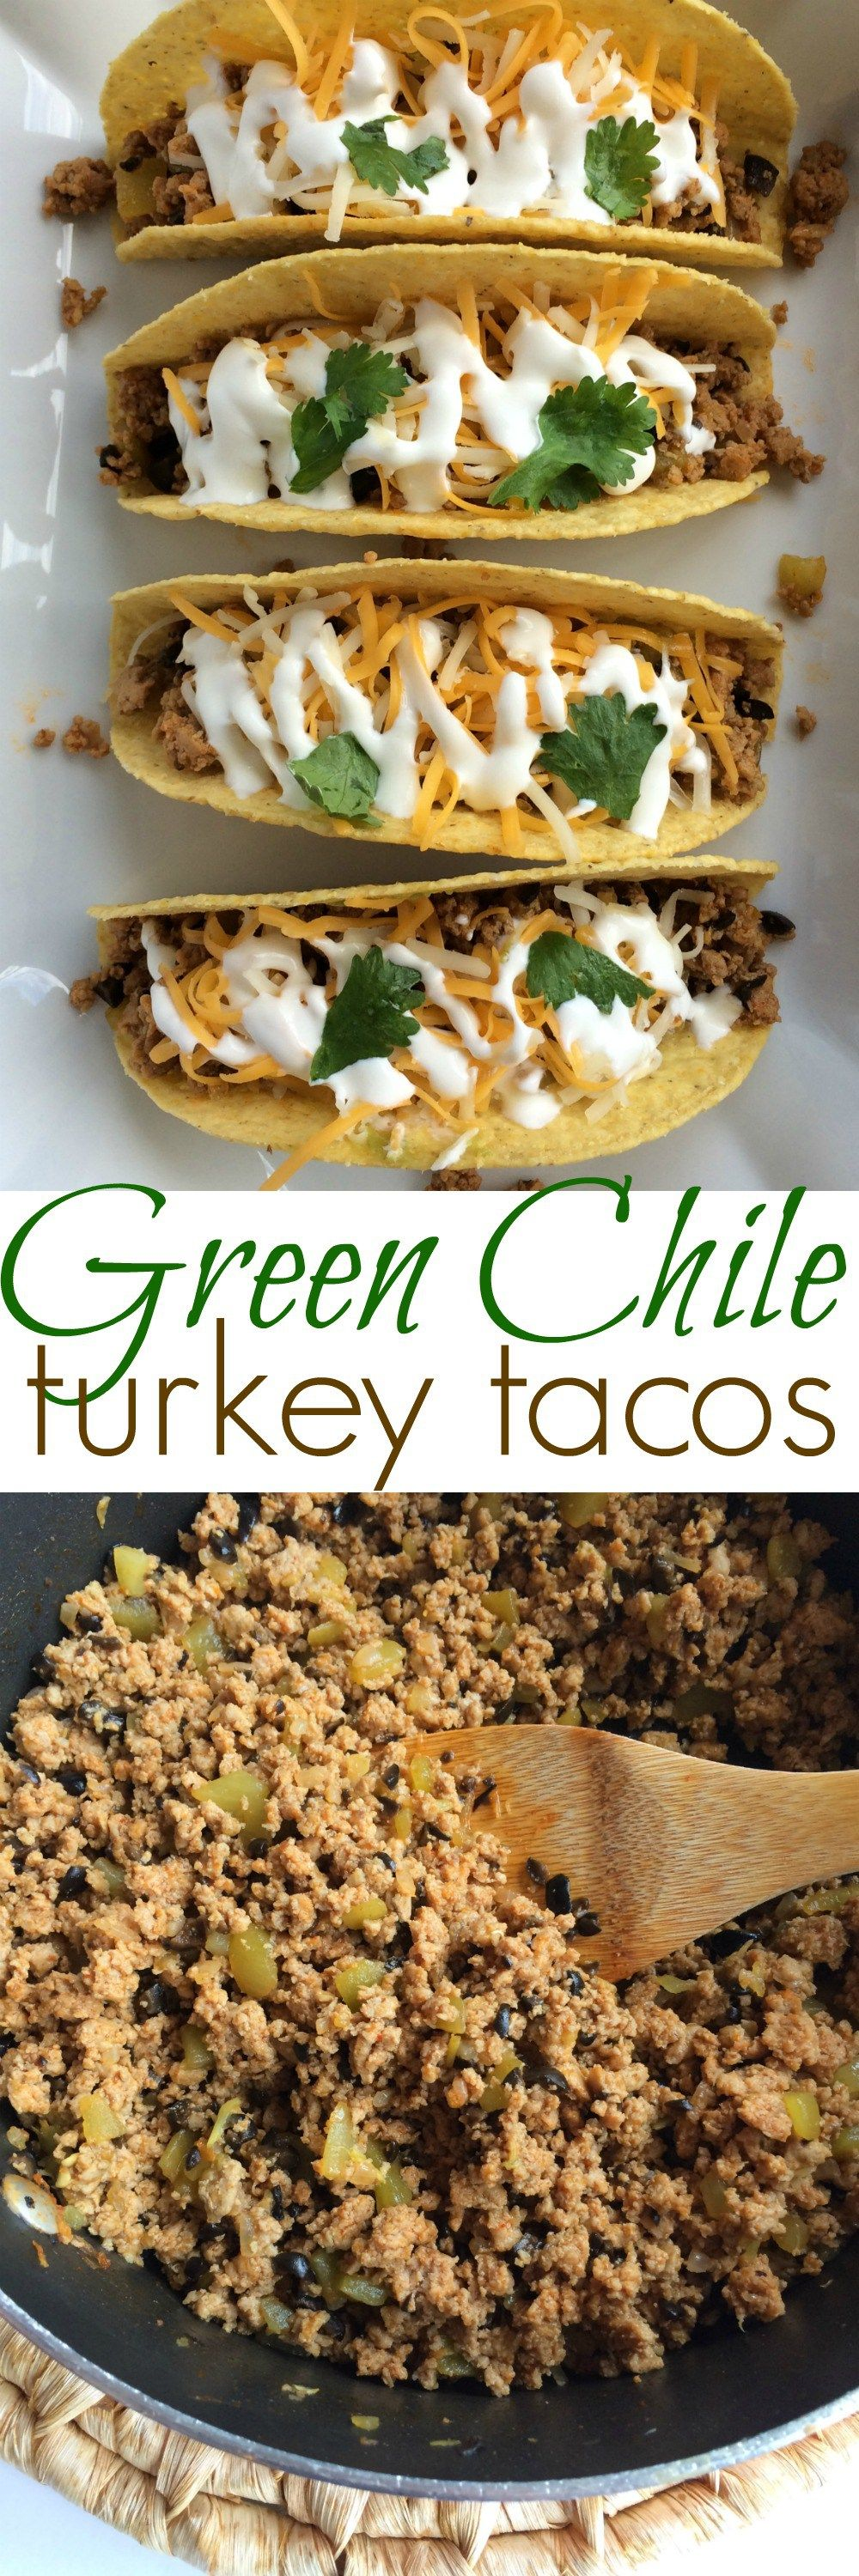 Green Chile Turkey Tacos | Together as Family #groundturkeytacos